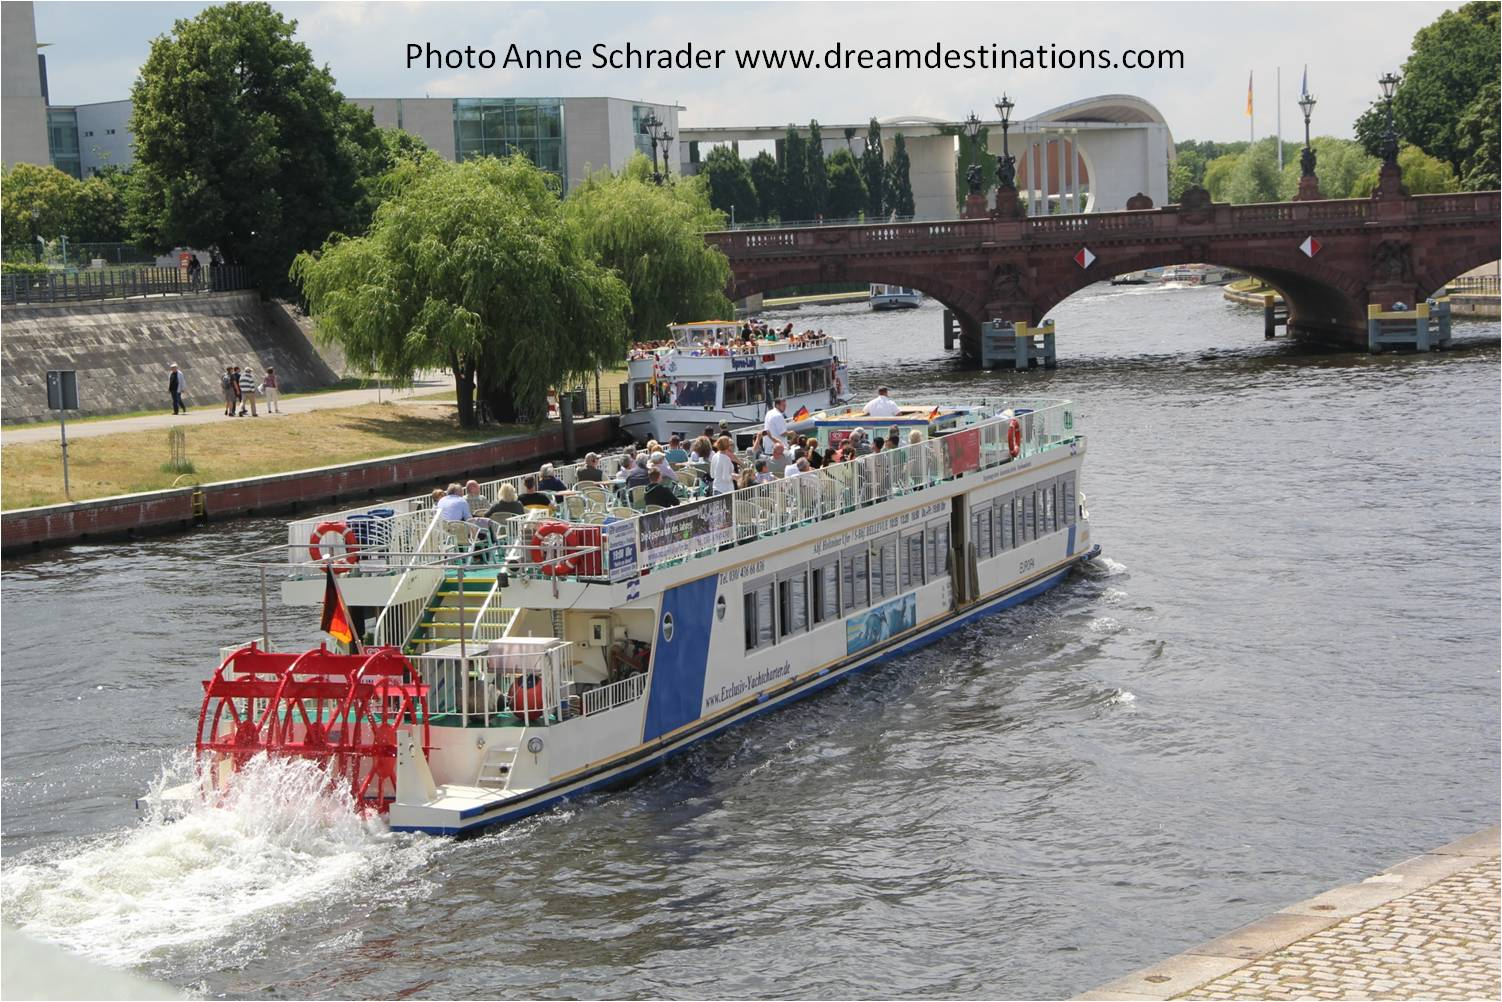 This paddle wheel boat is in Berlin, Germany but very similar to one used by CroisiEurope on the Elbe River.